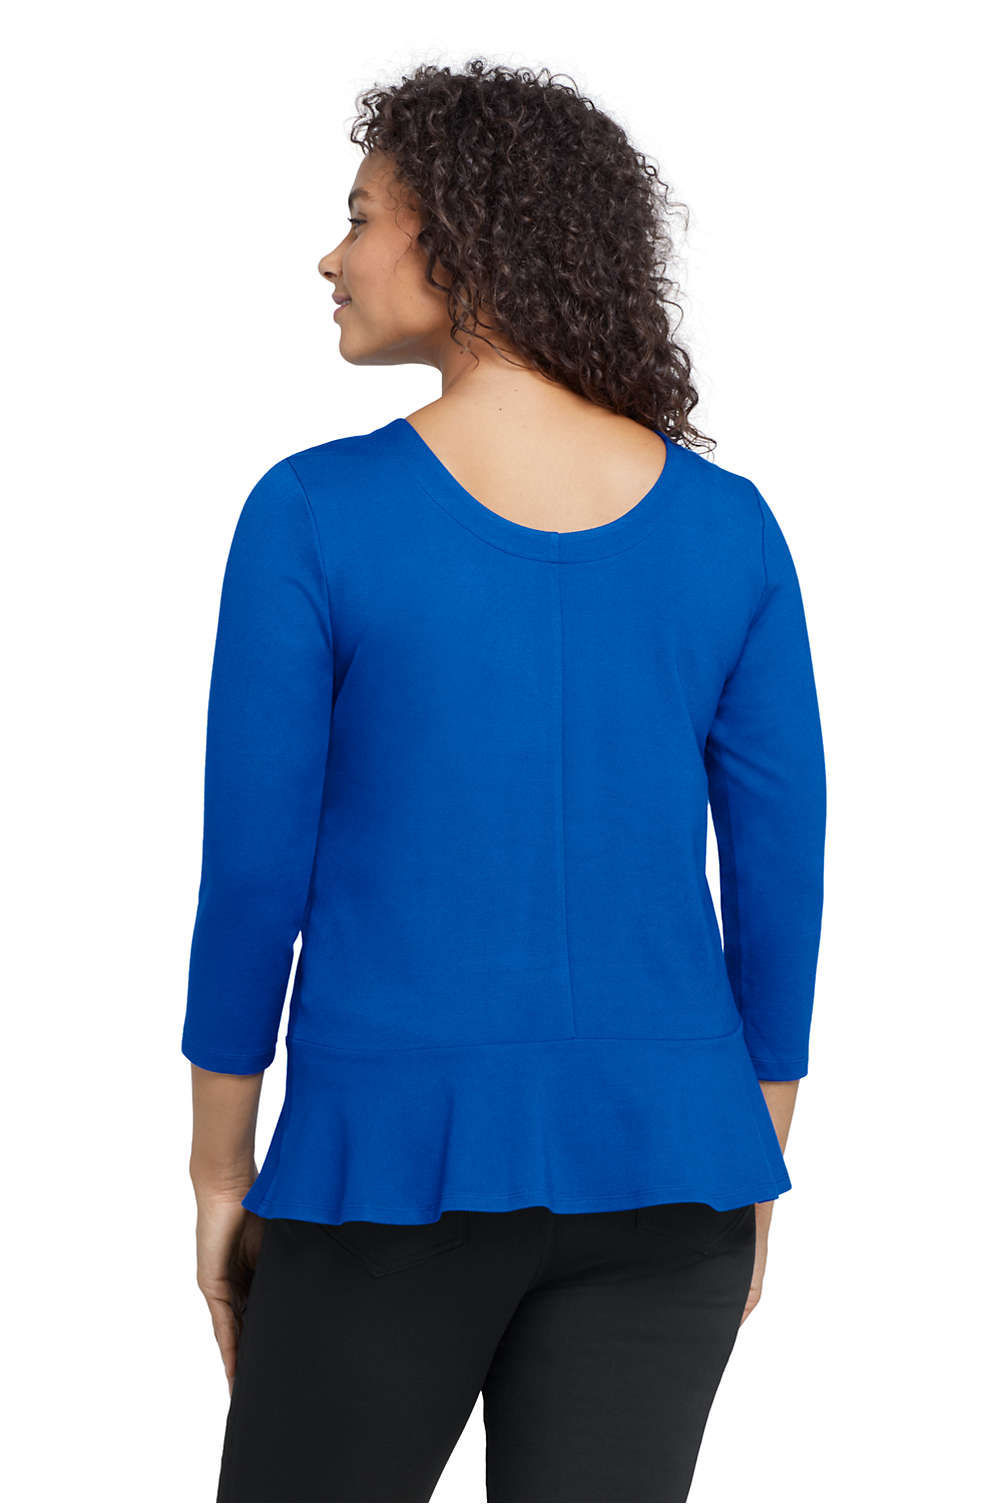 79aa9e15ee8 Women s Plus Size 3 4 Sleeve Ponte Peplum Top from Lands  End